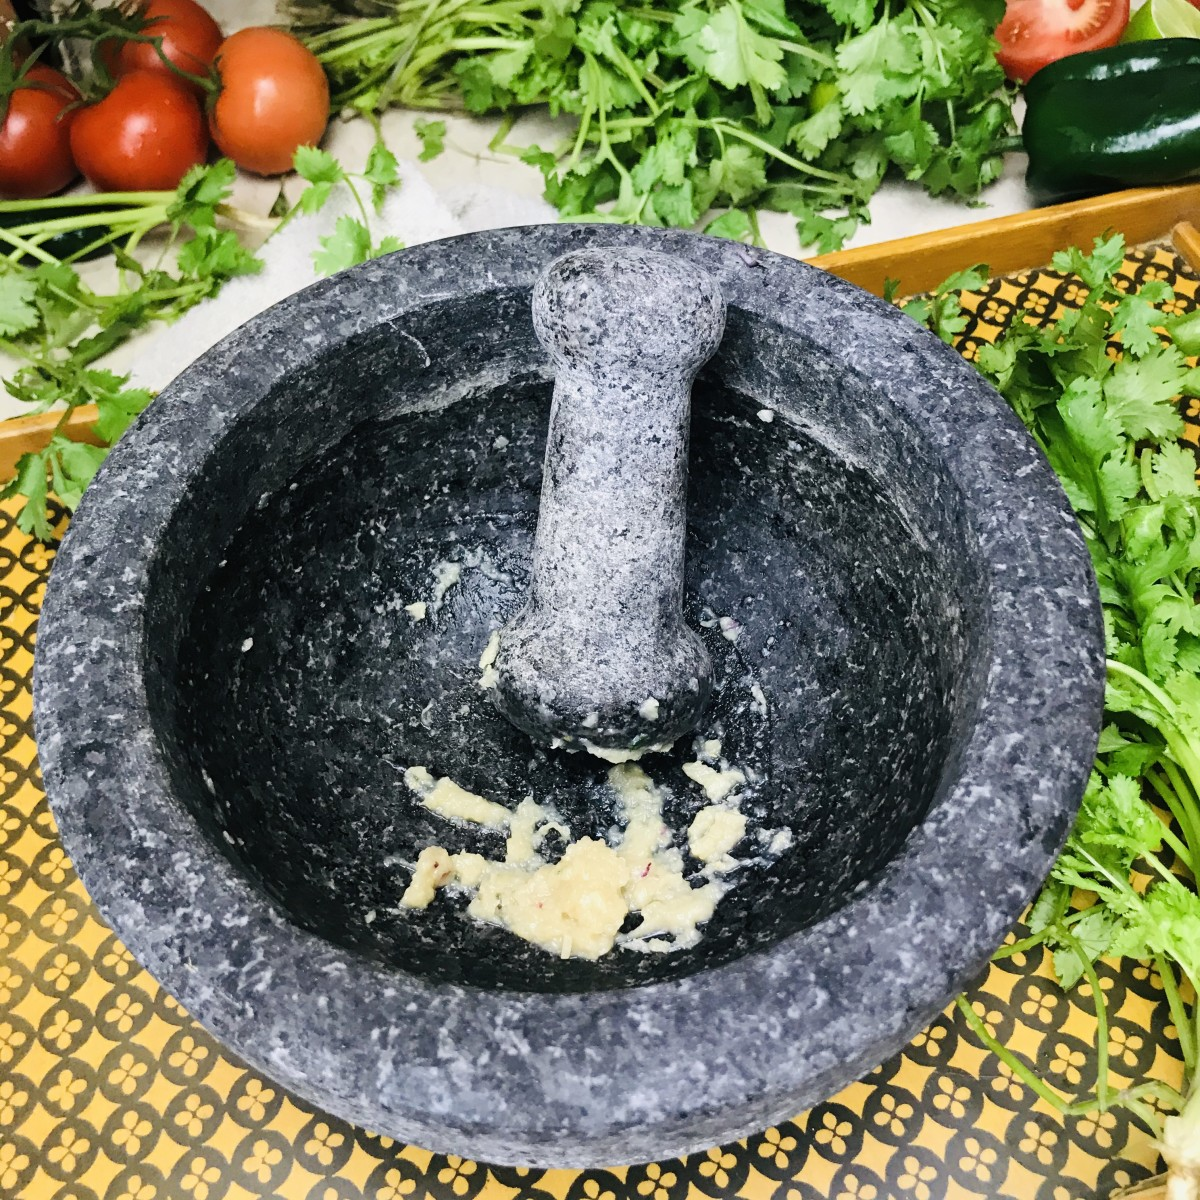 Mash the garlic in a molcajete until it is creamy with very few lumps.